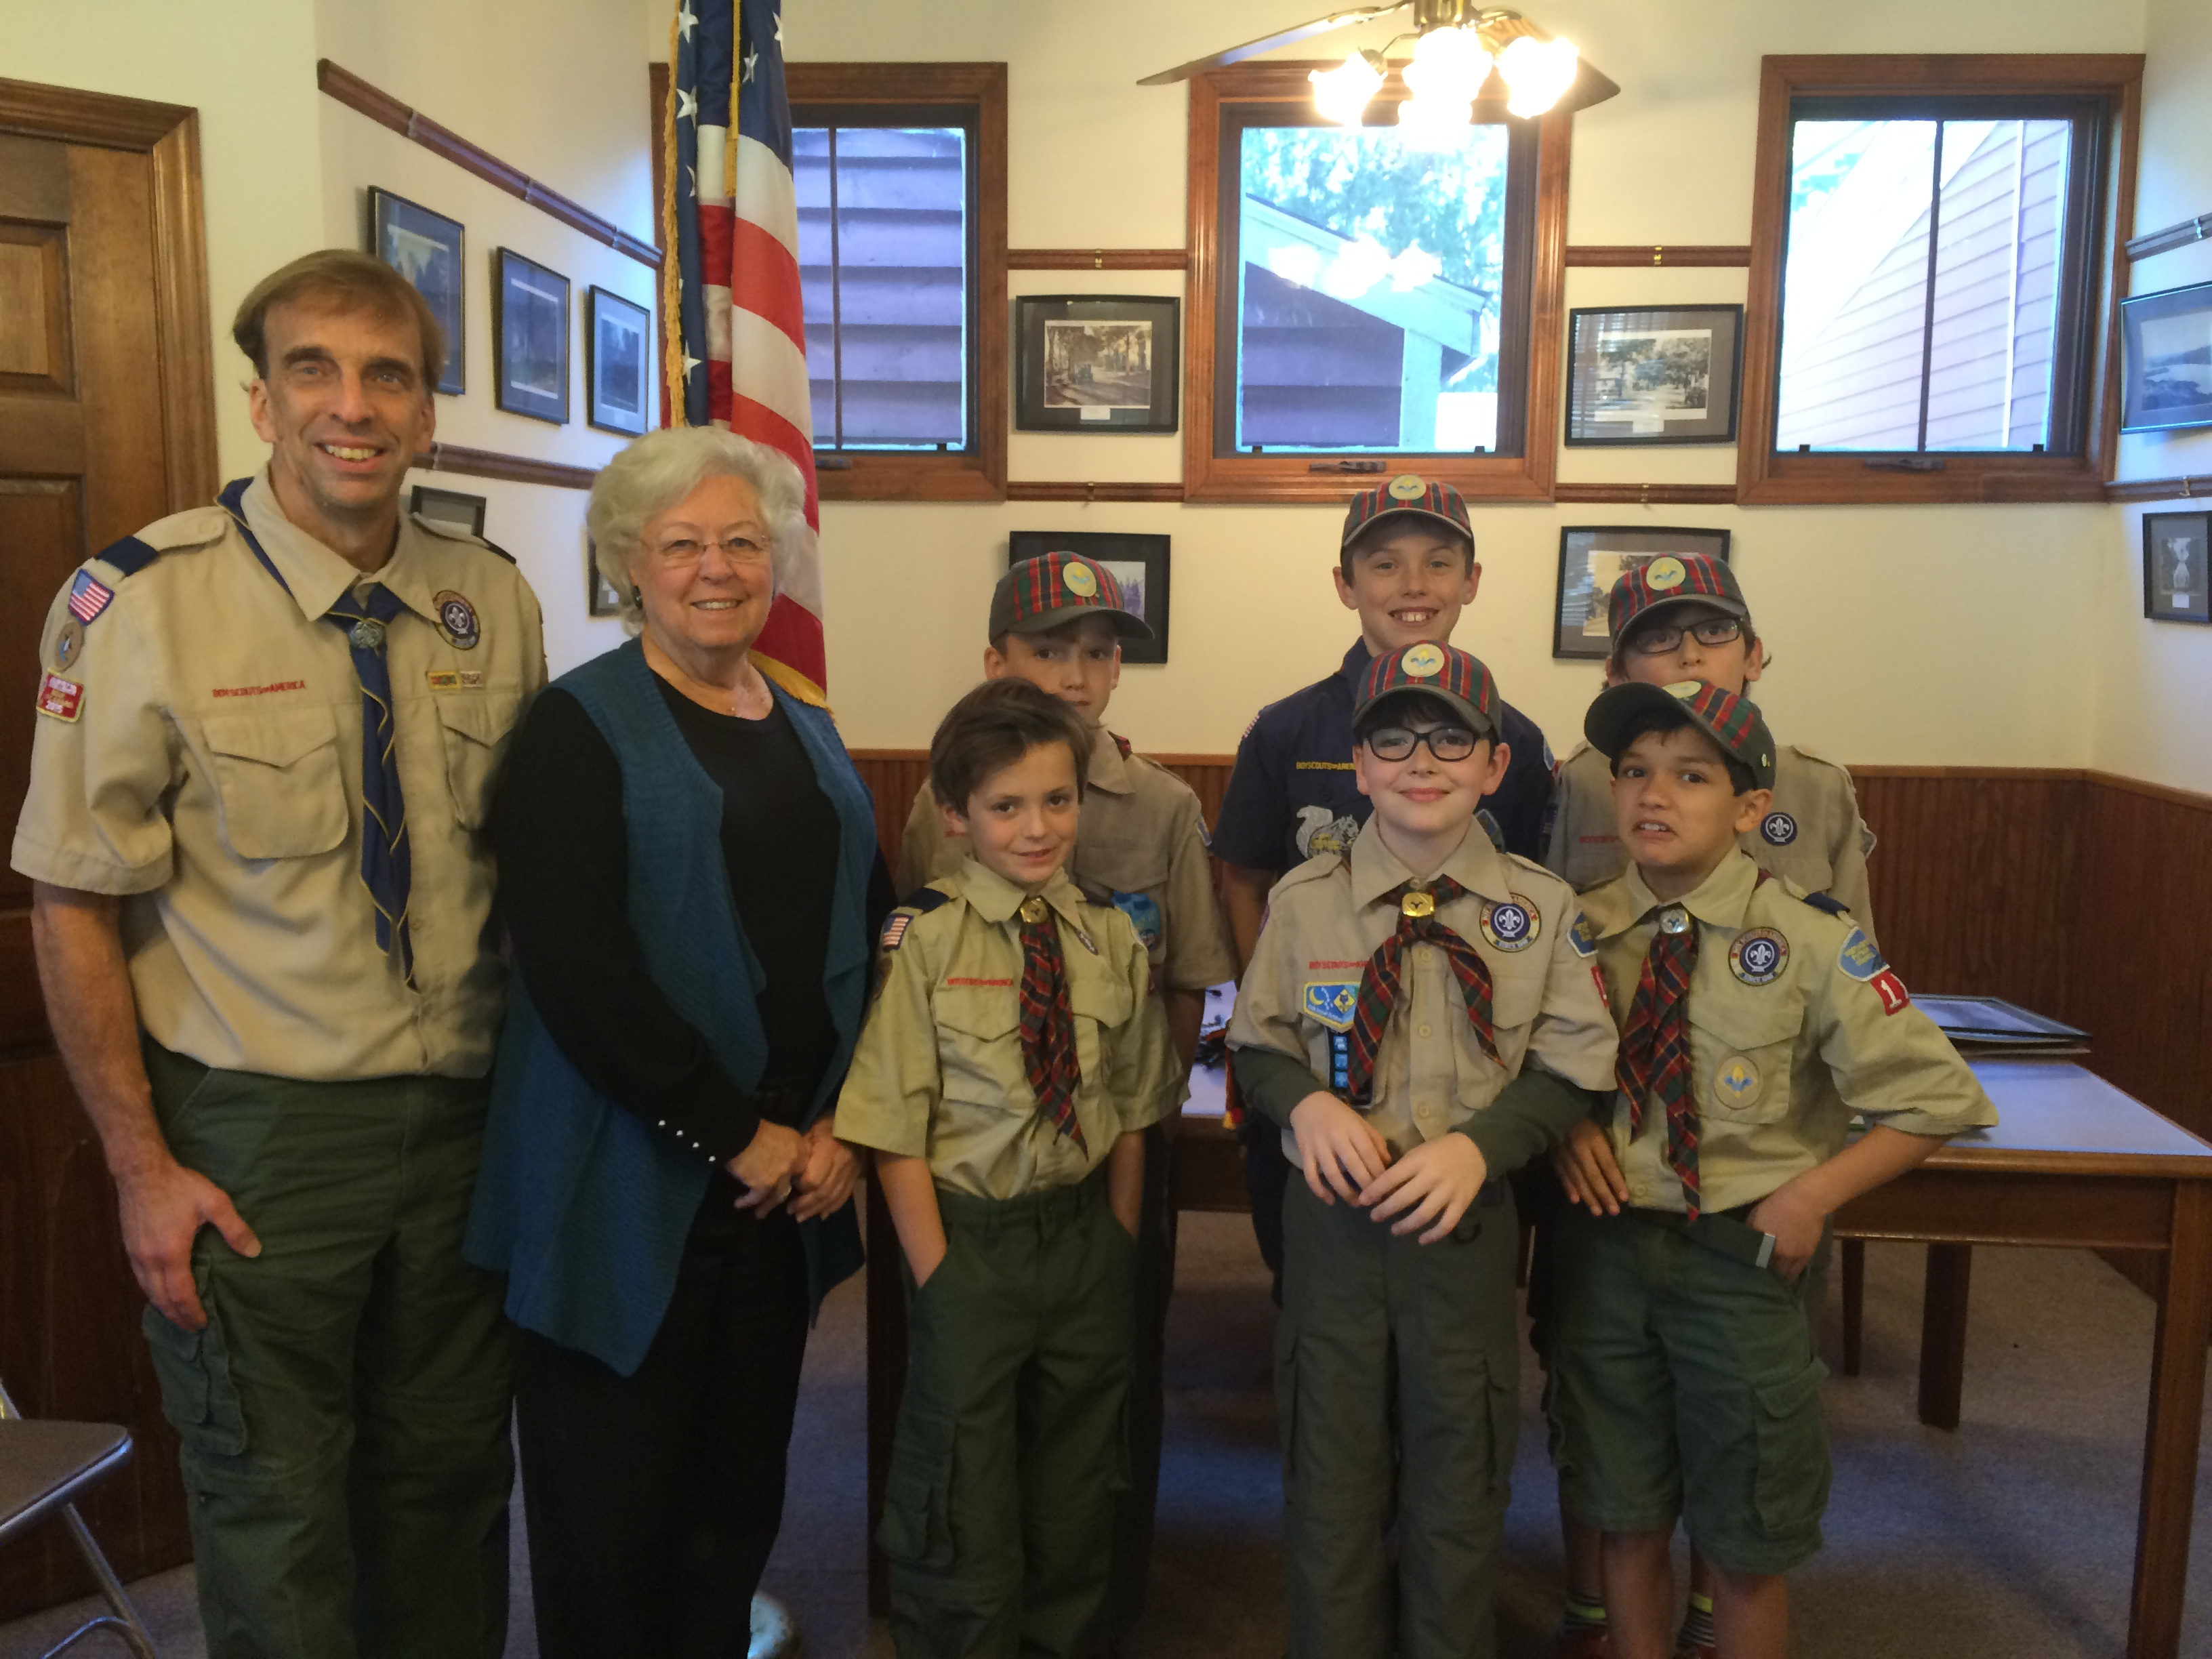 Sandy met with some Cub Scouts and their troop leader in Nelsonville to talk about government and civil service. There are many scouts of all ages throughout her district, and Sandy greatly enjoys bei